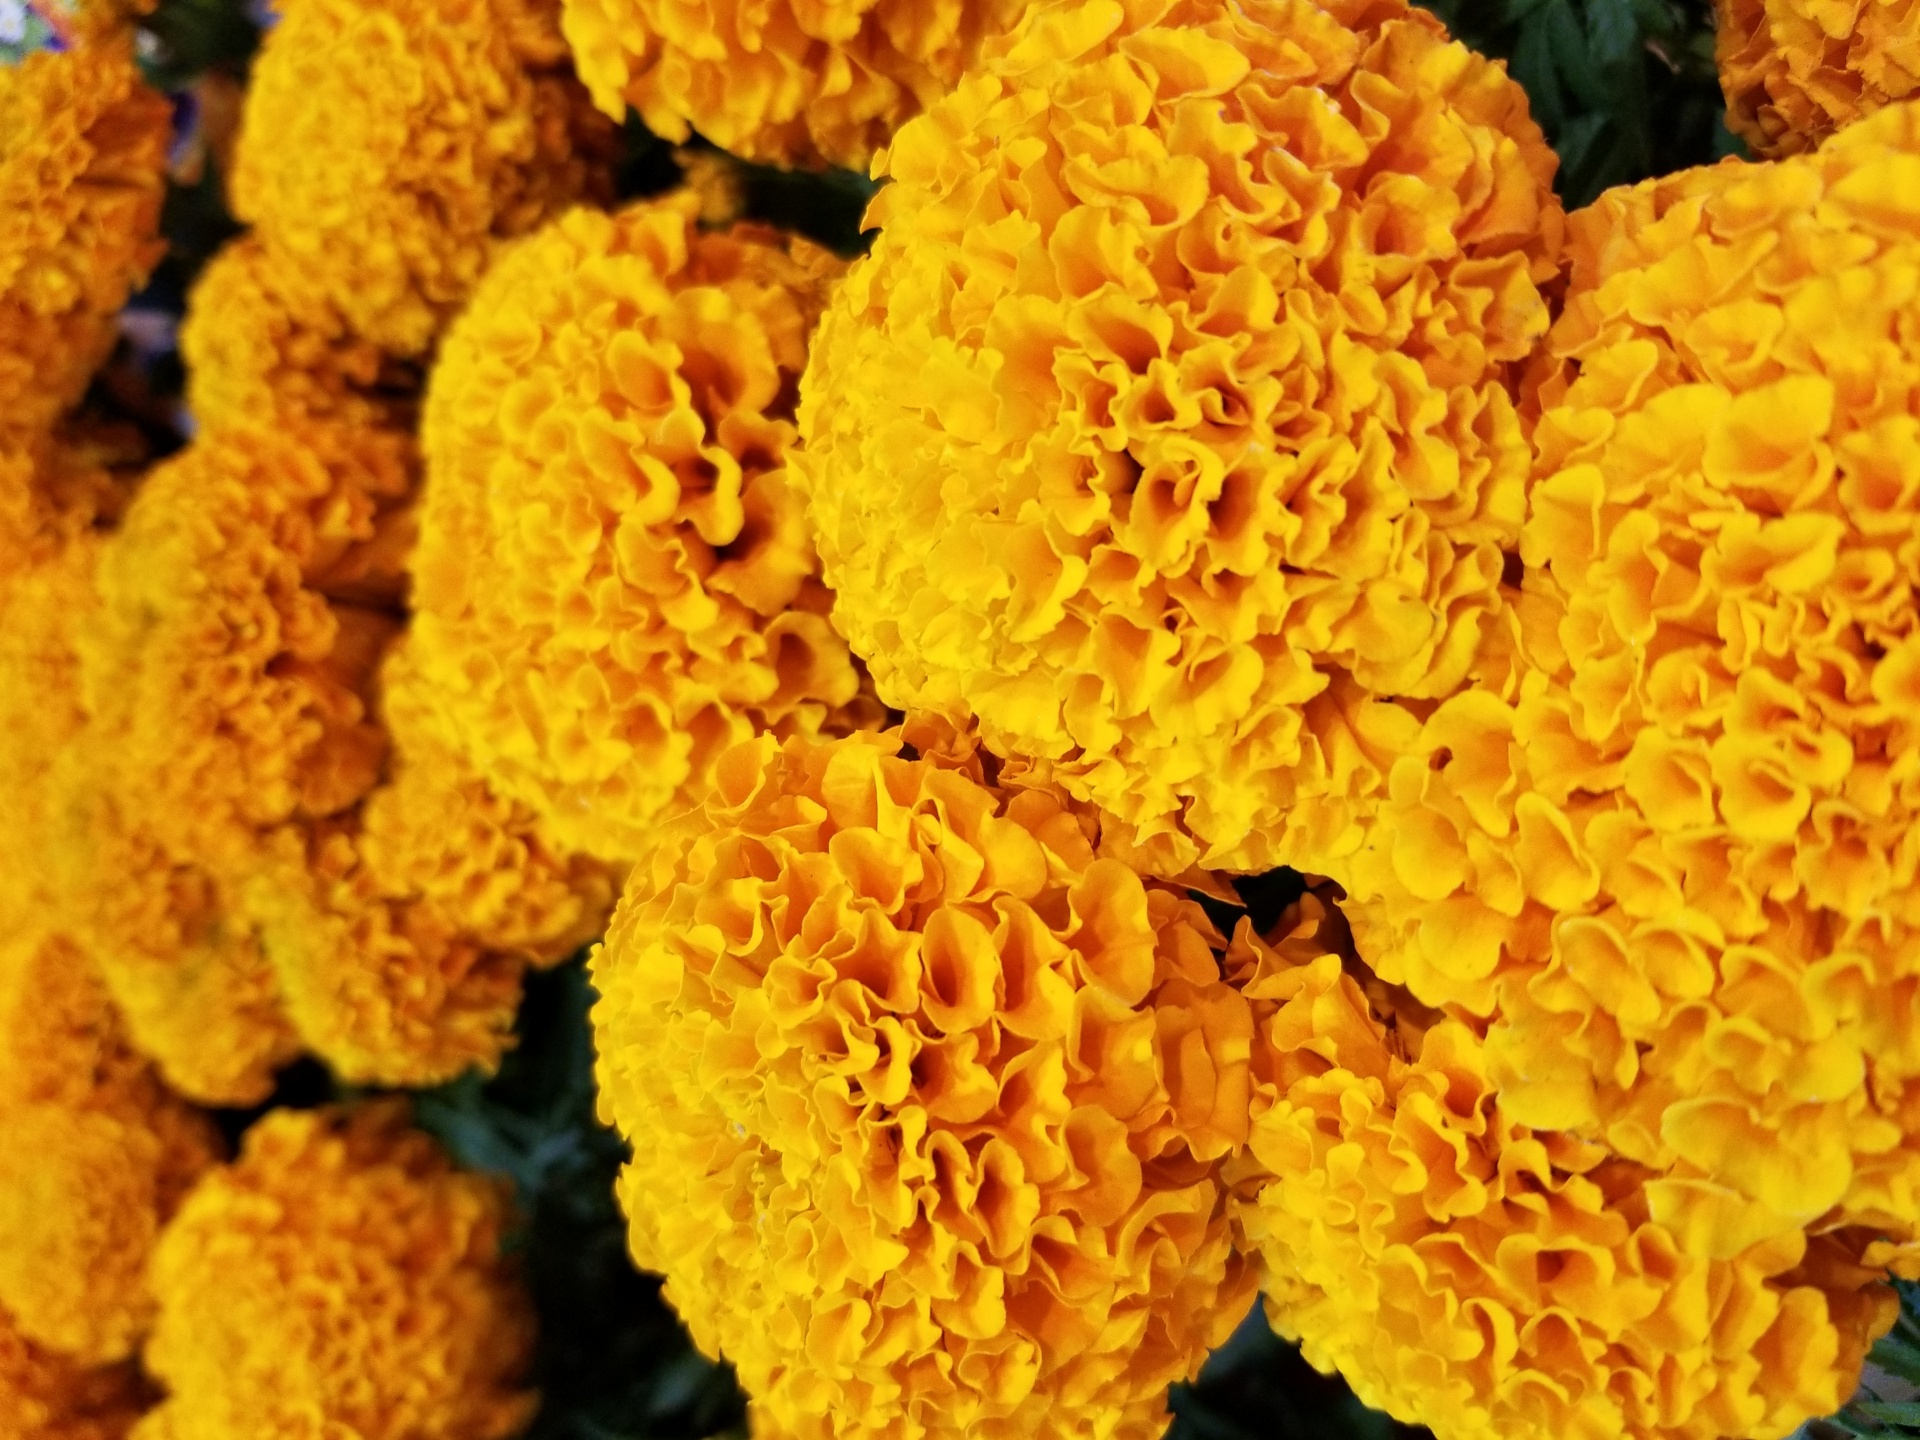 A cluster of marigolds